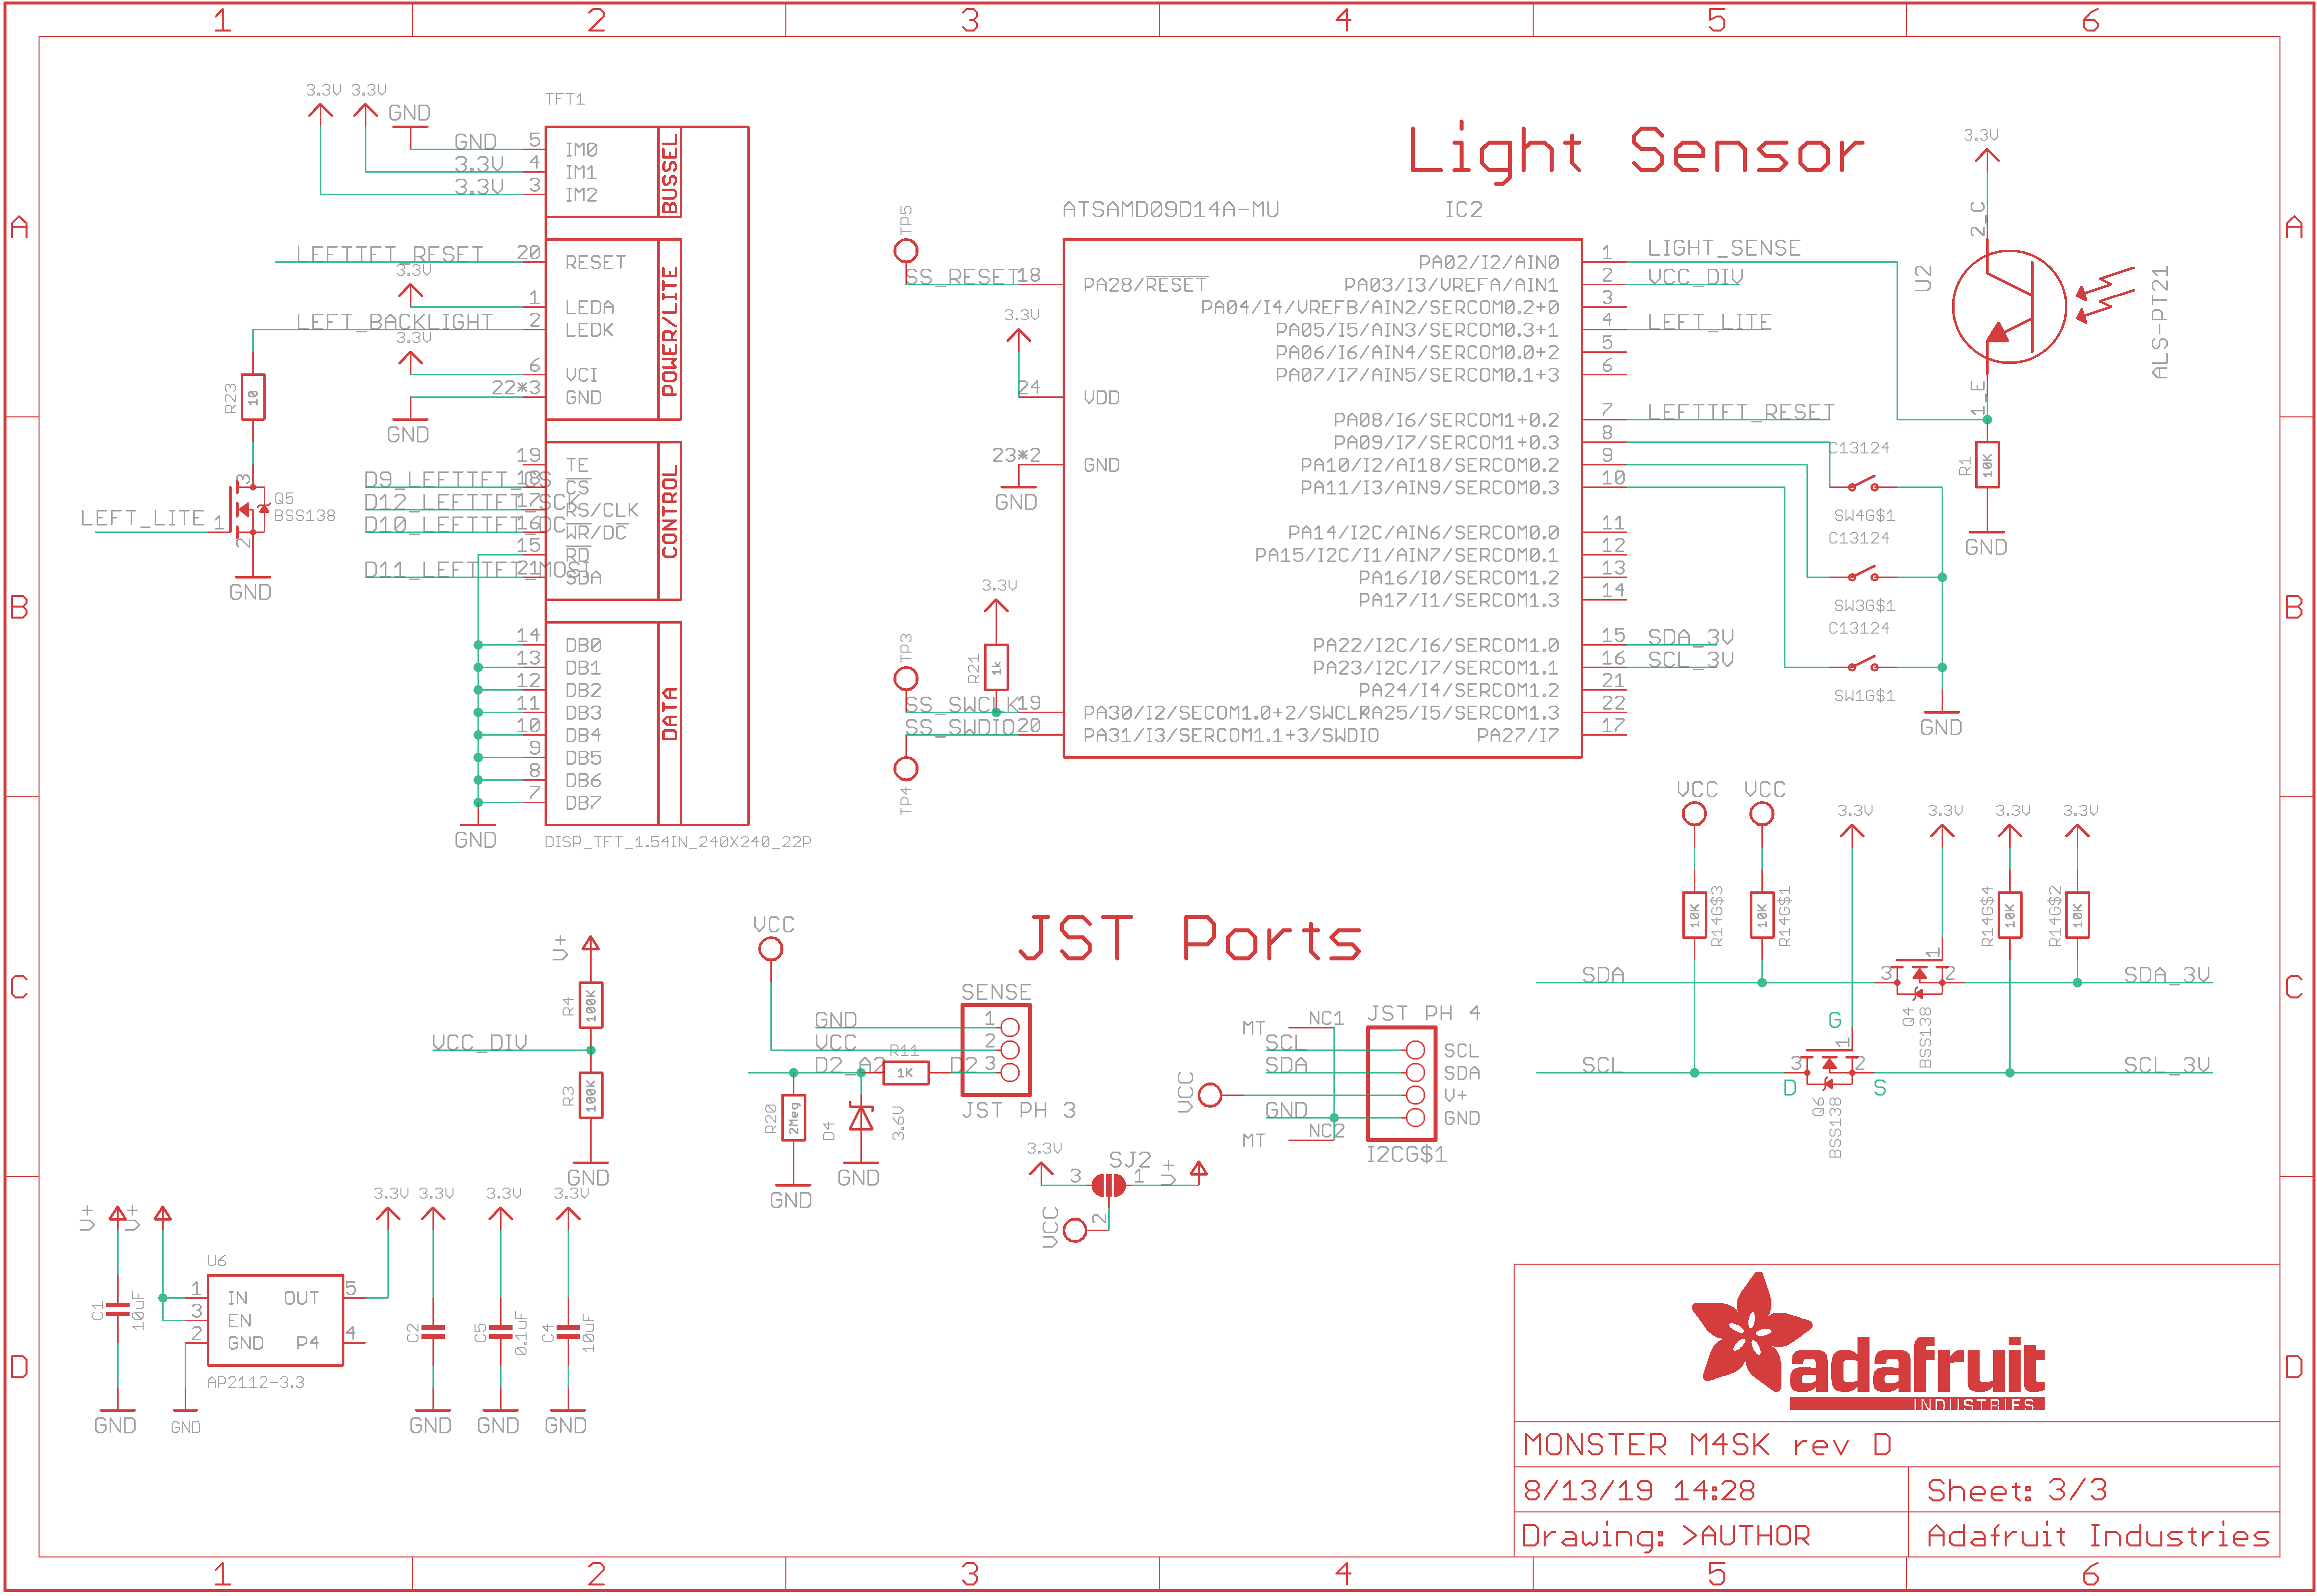 adafruit_products_MONSTER_M4SK_Schematic_3.png